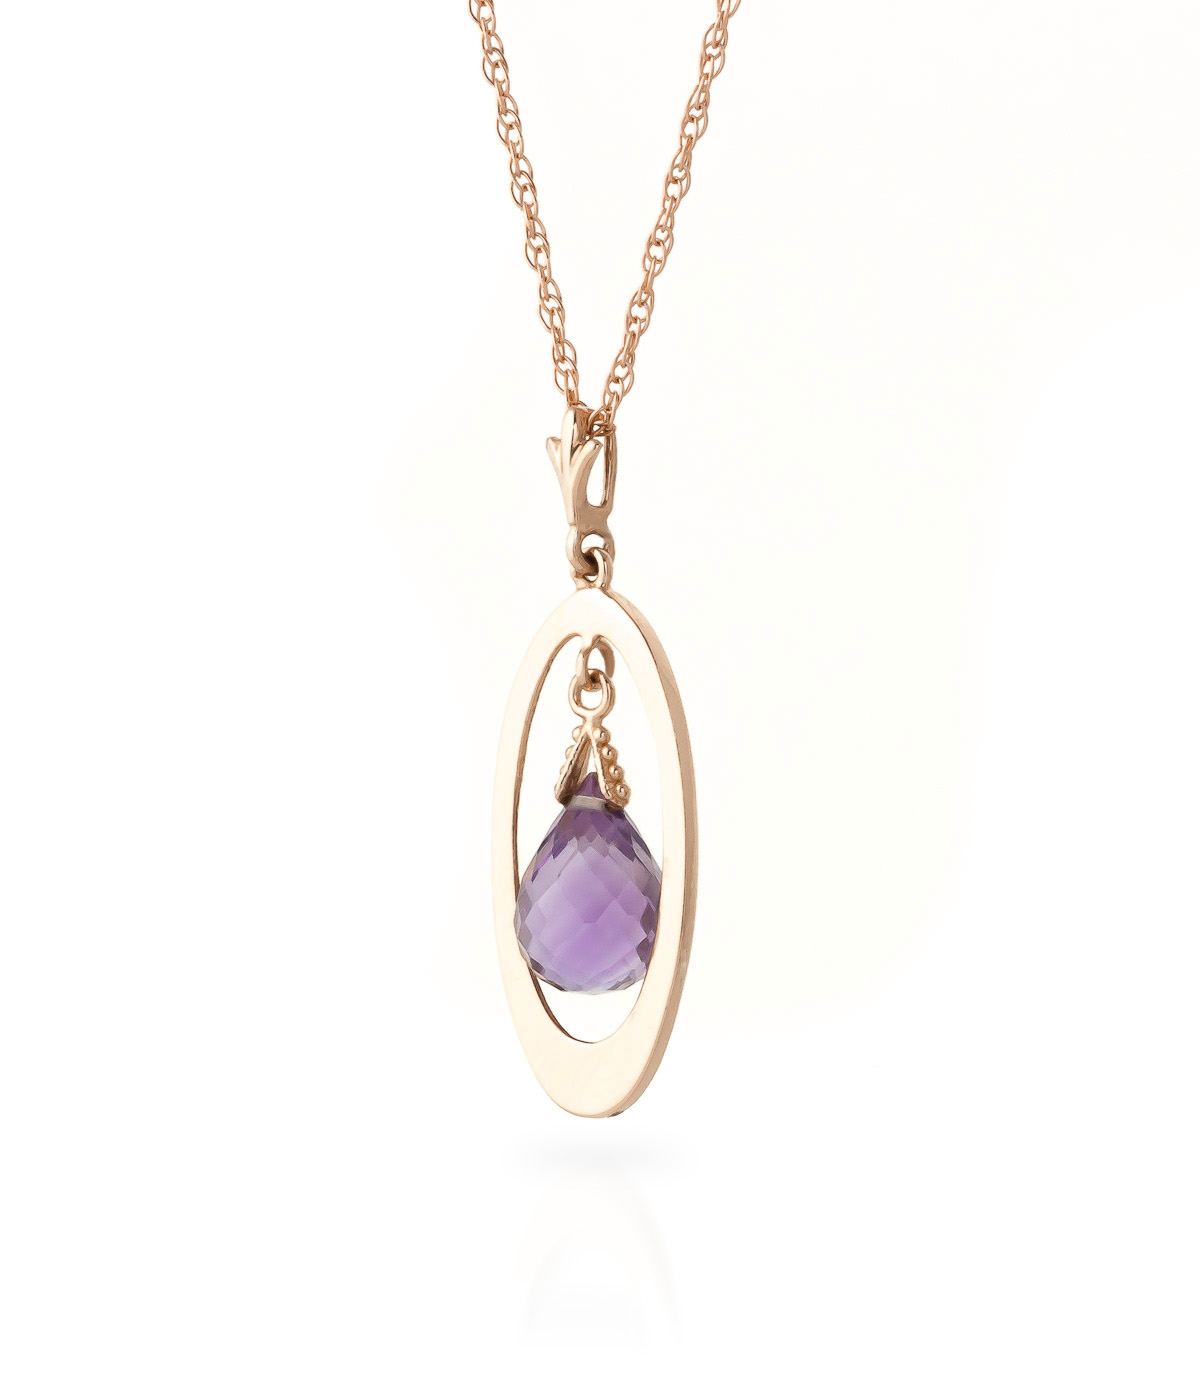 Amethyst Orb Briolette Pendant Necklace 0.7ct in 14K Rose Gold